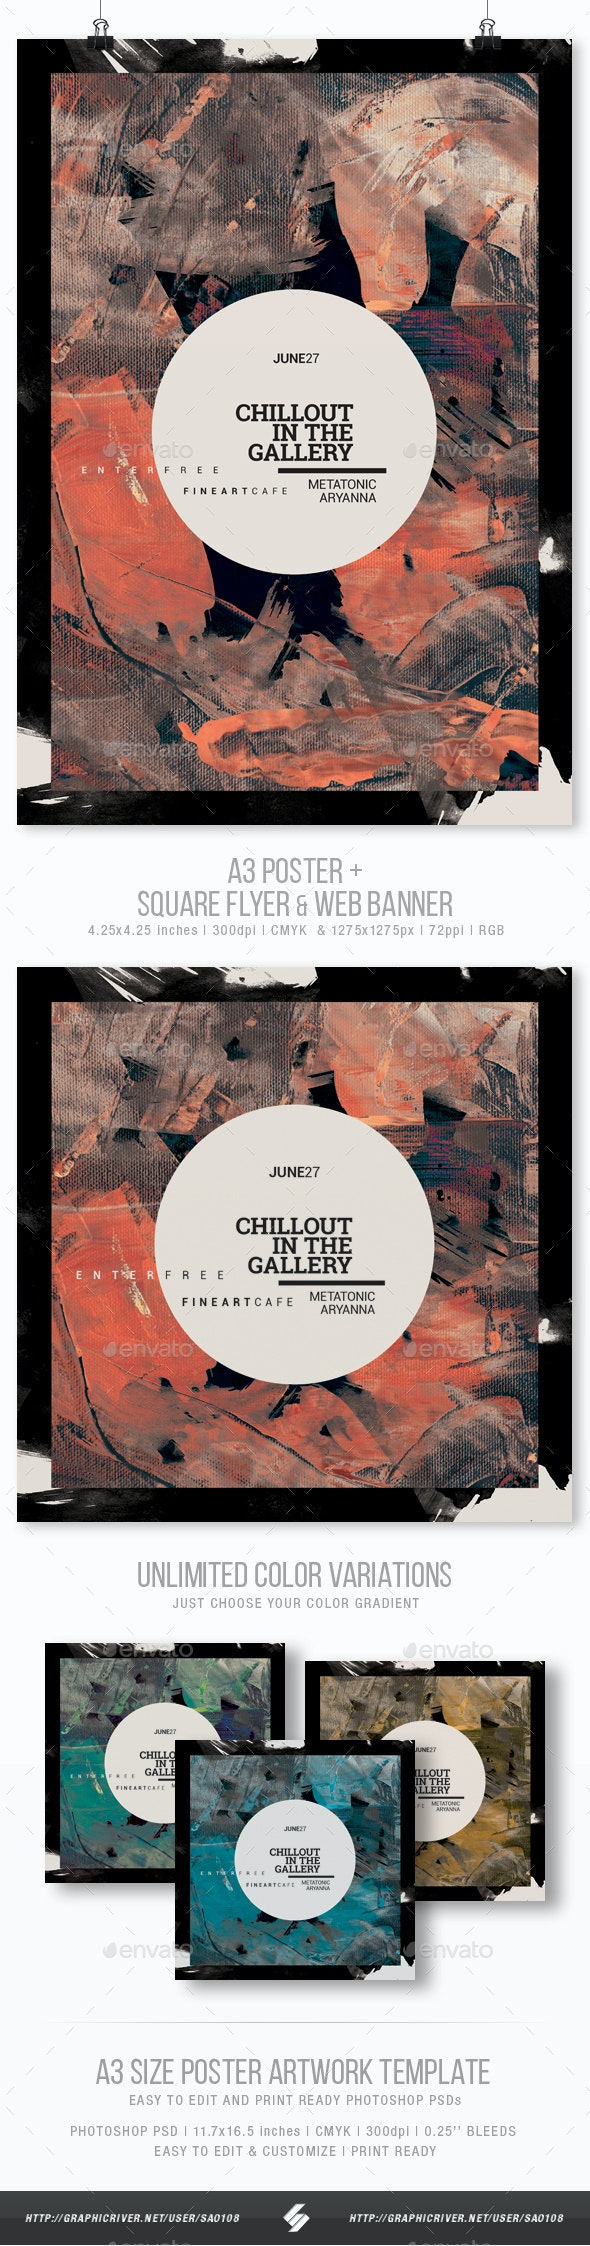 Chillout In The Gallery - Event Flyer / Poster Template A3 - Clubs & Parties Events